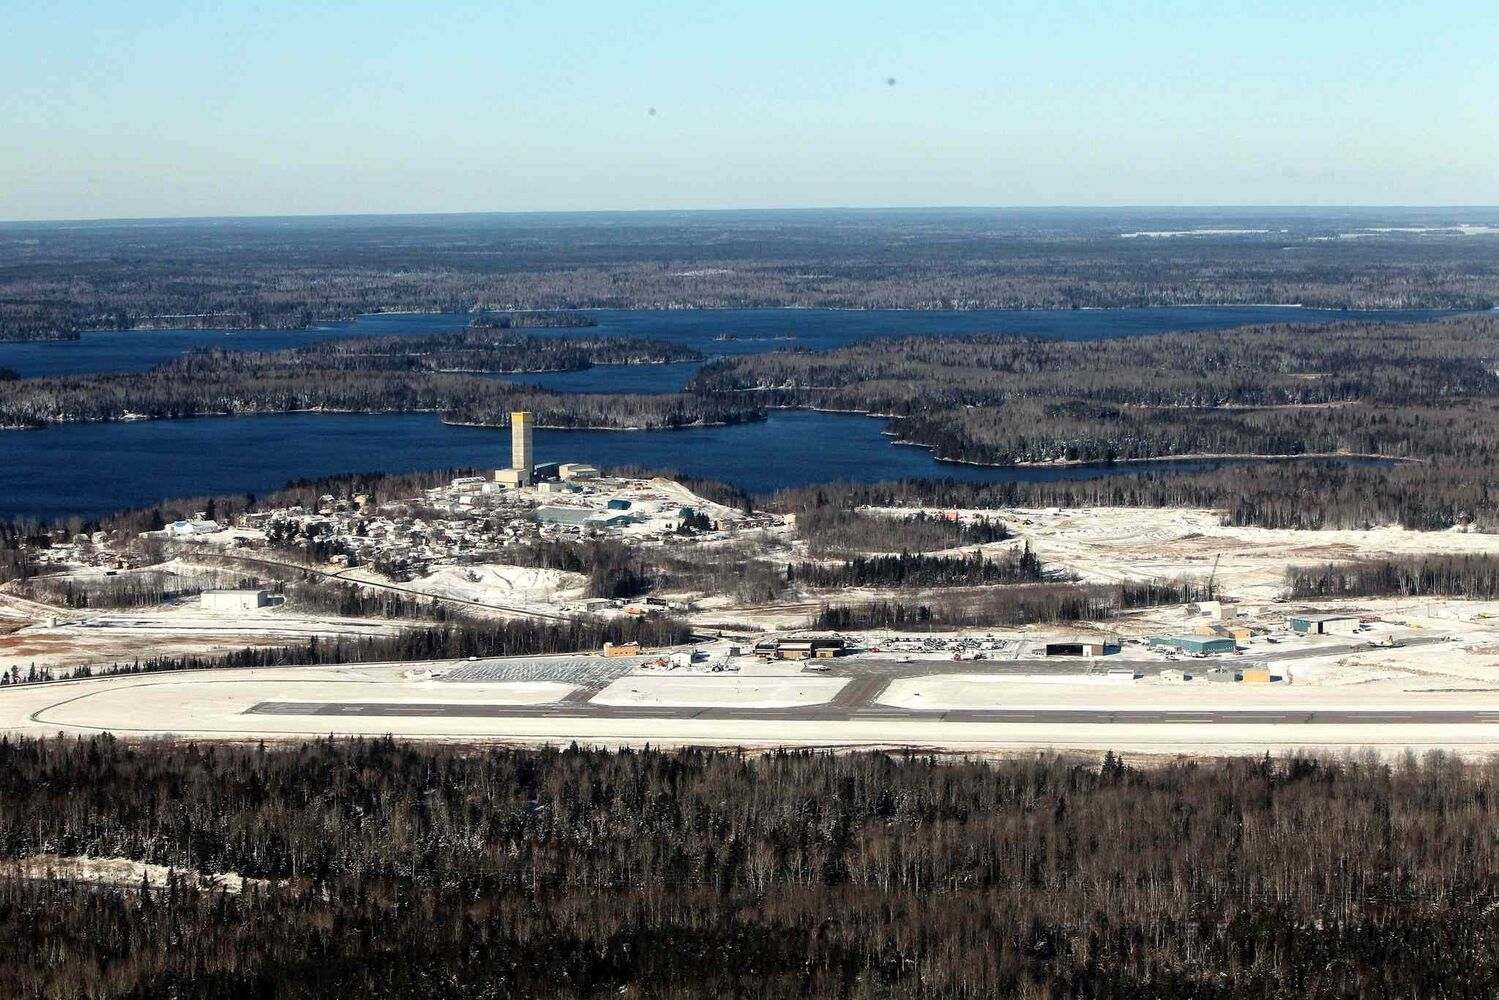 The airport at Red Lake, Ontario where a Bearskin Airline plane crashed just before landing killing five while two others survived.